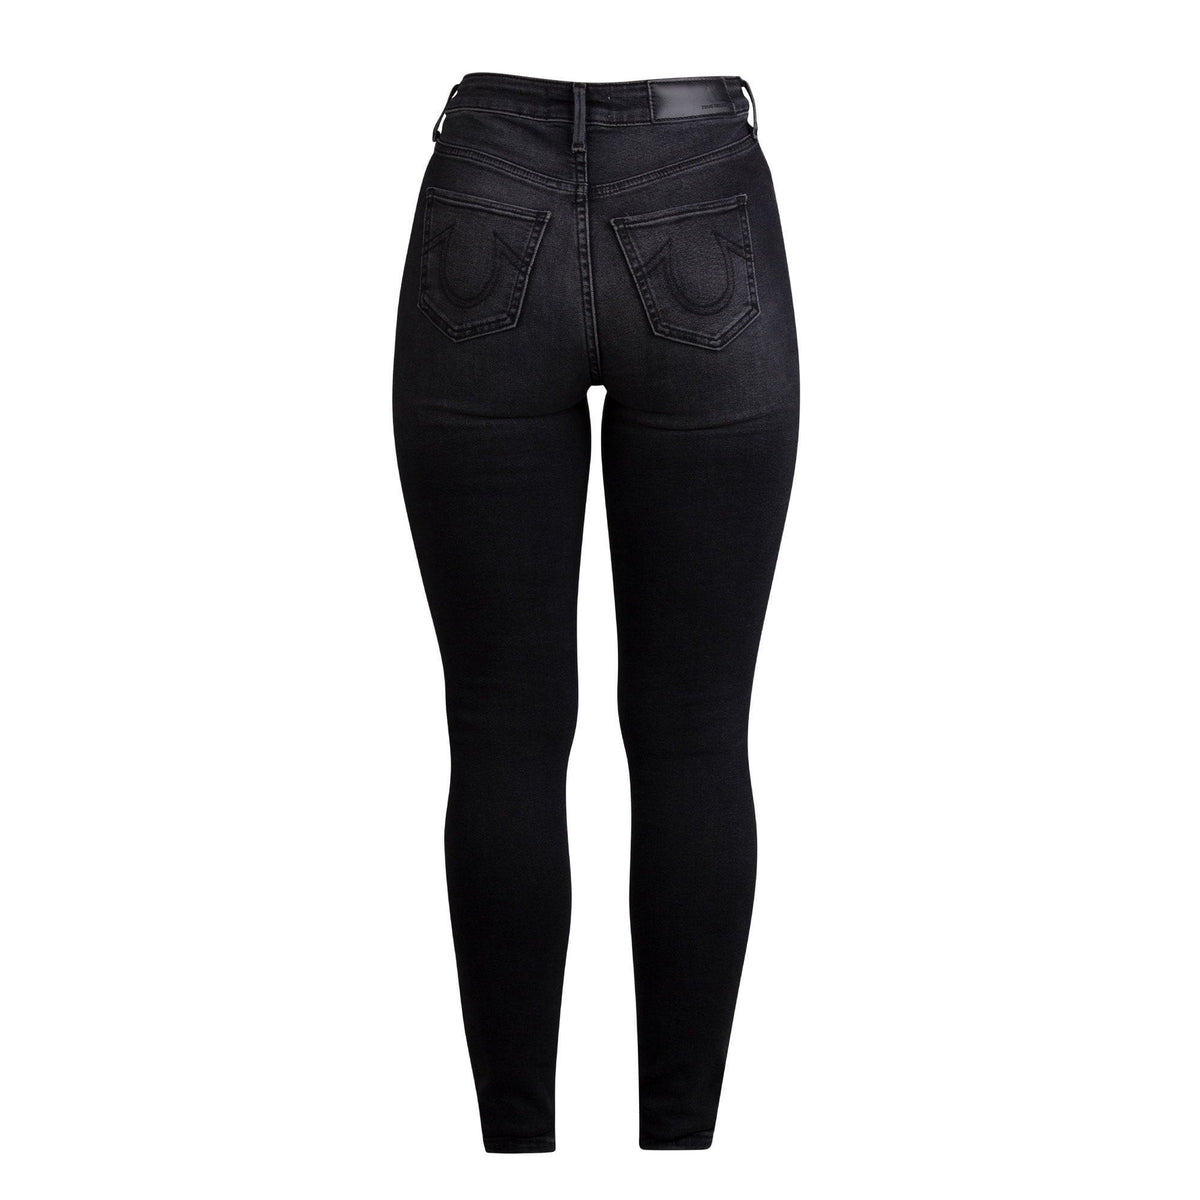 True Religion Caia Ultra High Rise Hypster Skinny Jeans